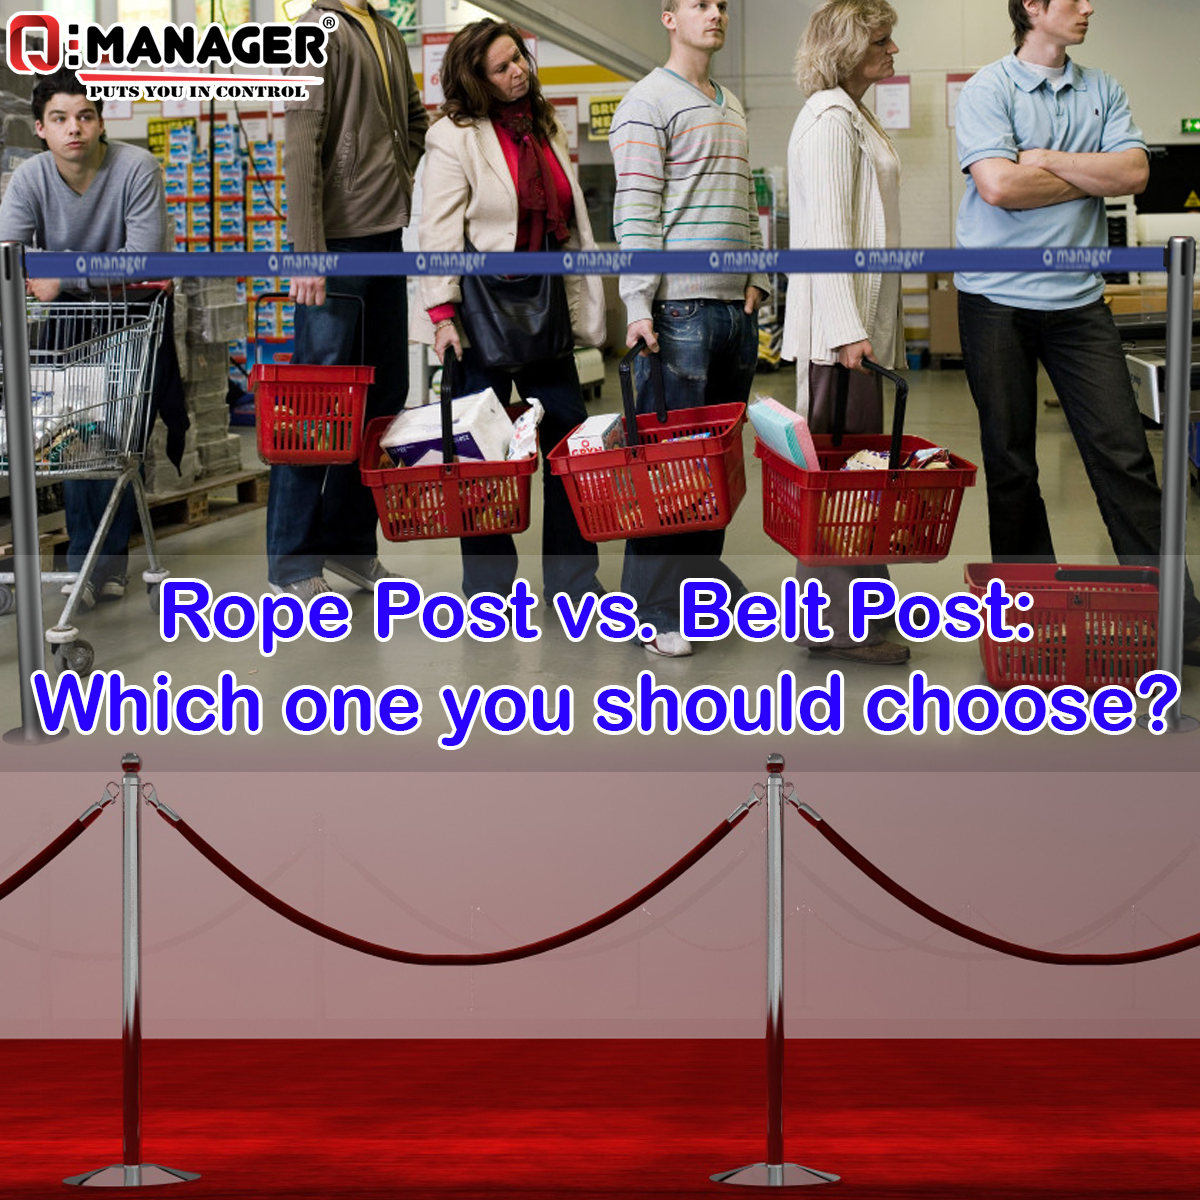 Rope Post vs. Belt Post: Which one you should choose?